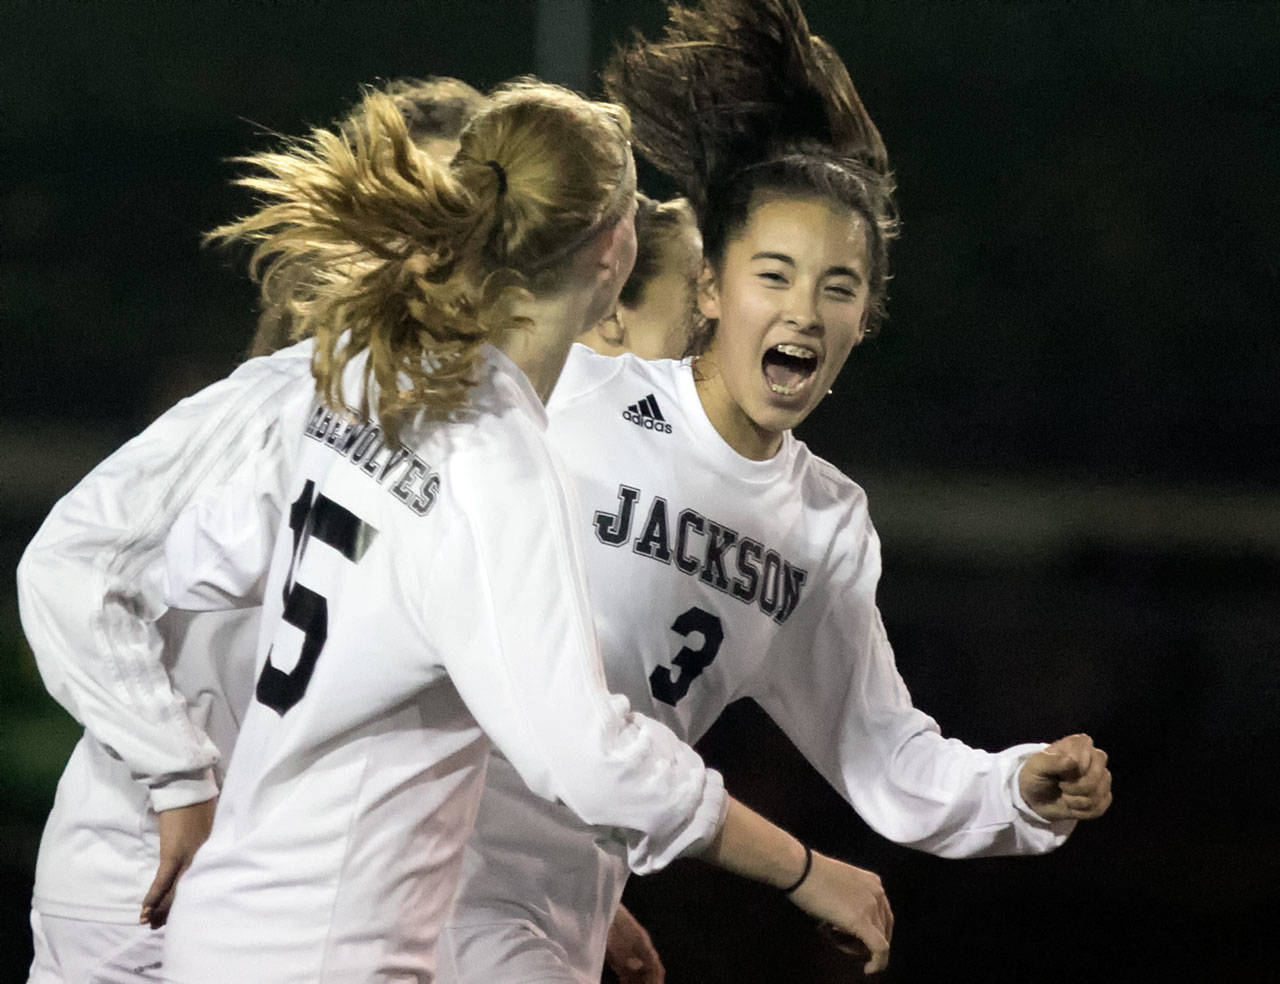 Katie Cheng (3) is one of the top returning players for a Jackson team that is looking for its sixth straight Wesco 4A championship. (Kevin Clark / Herald file)